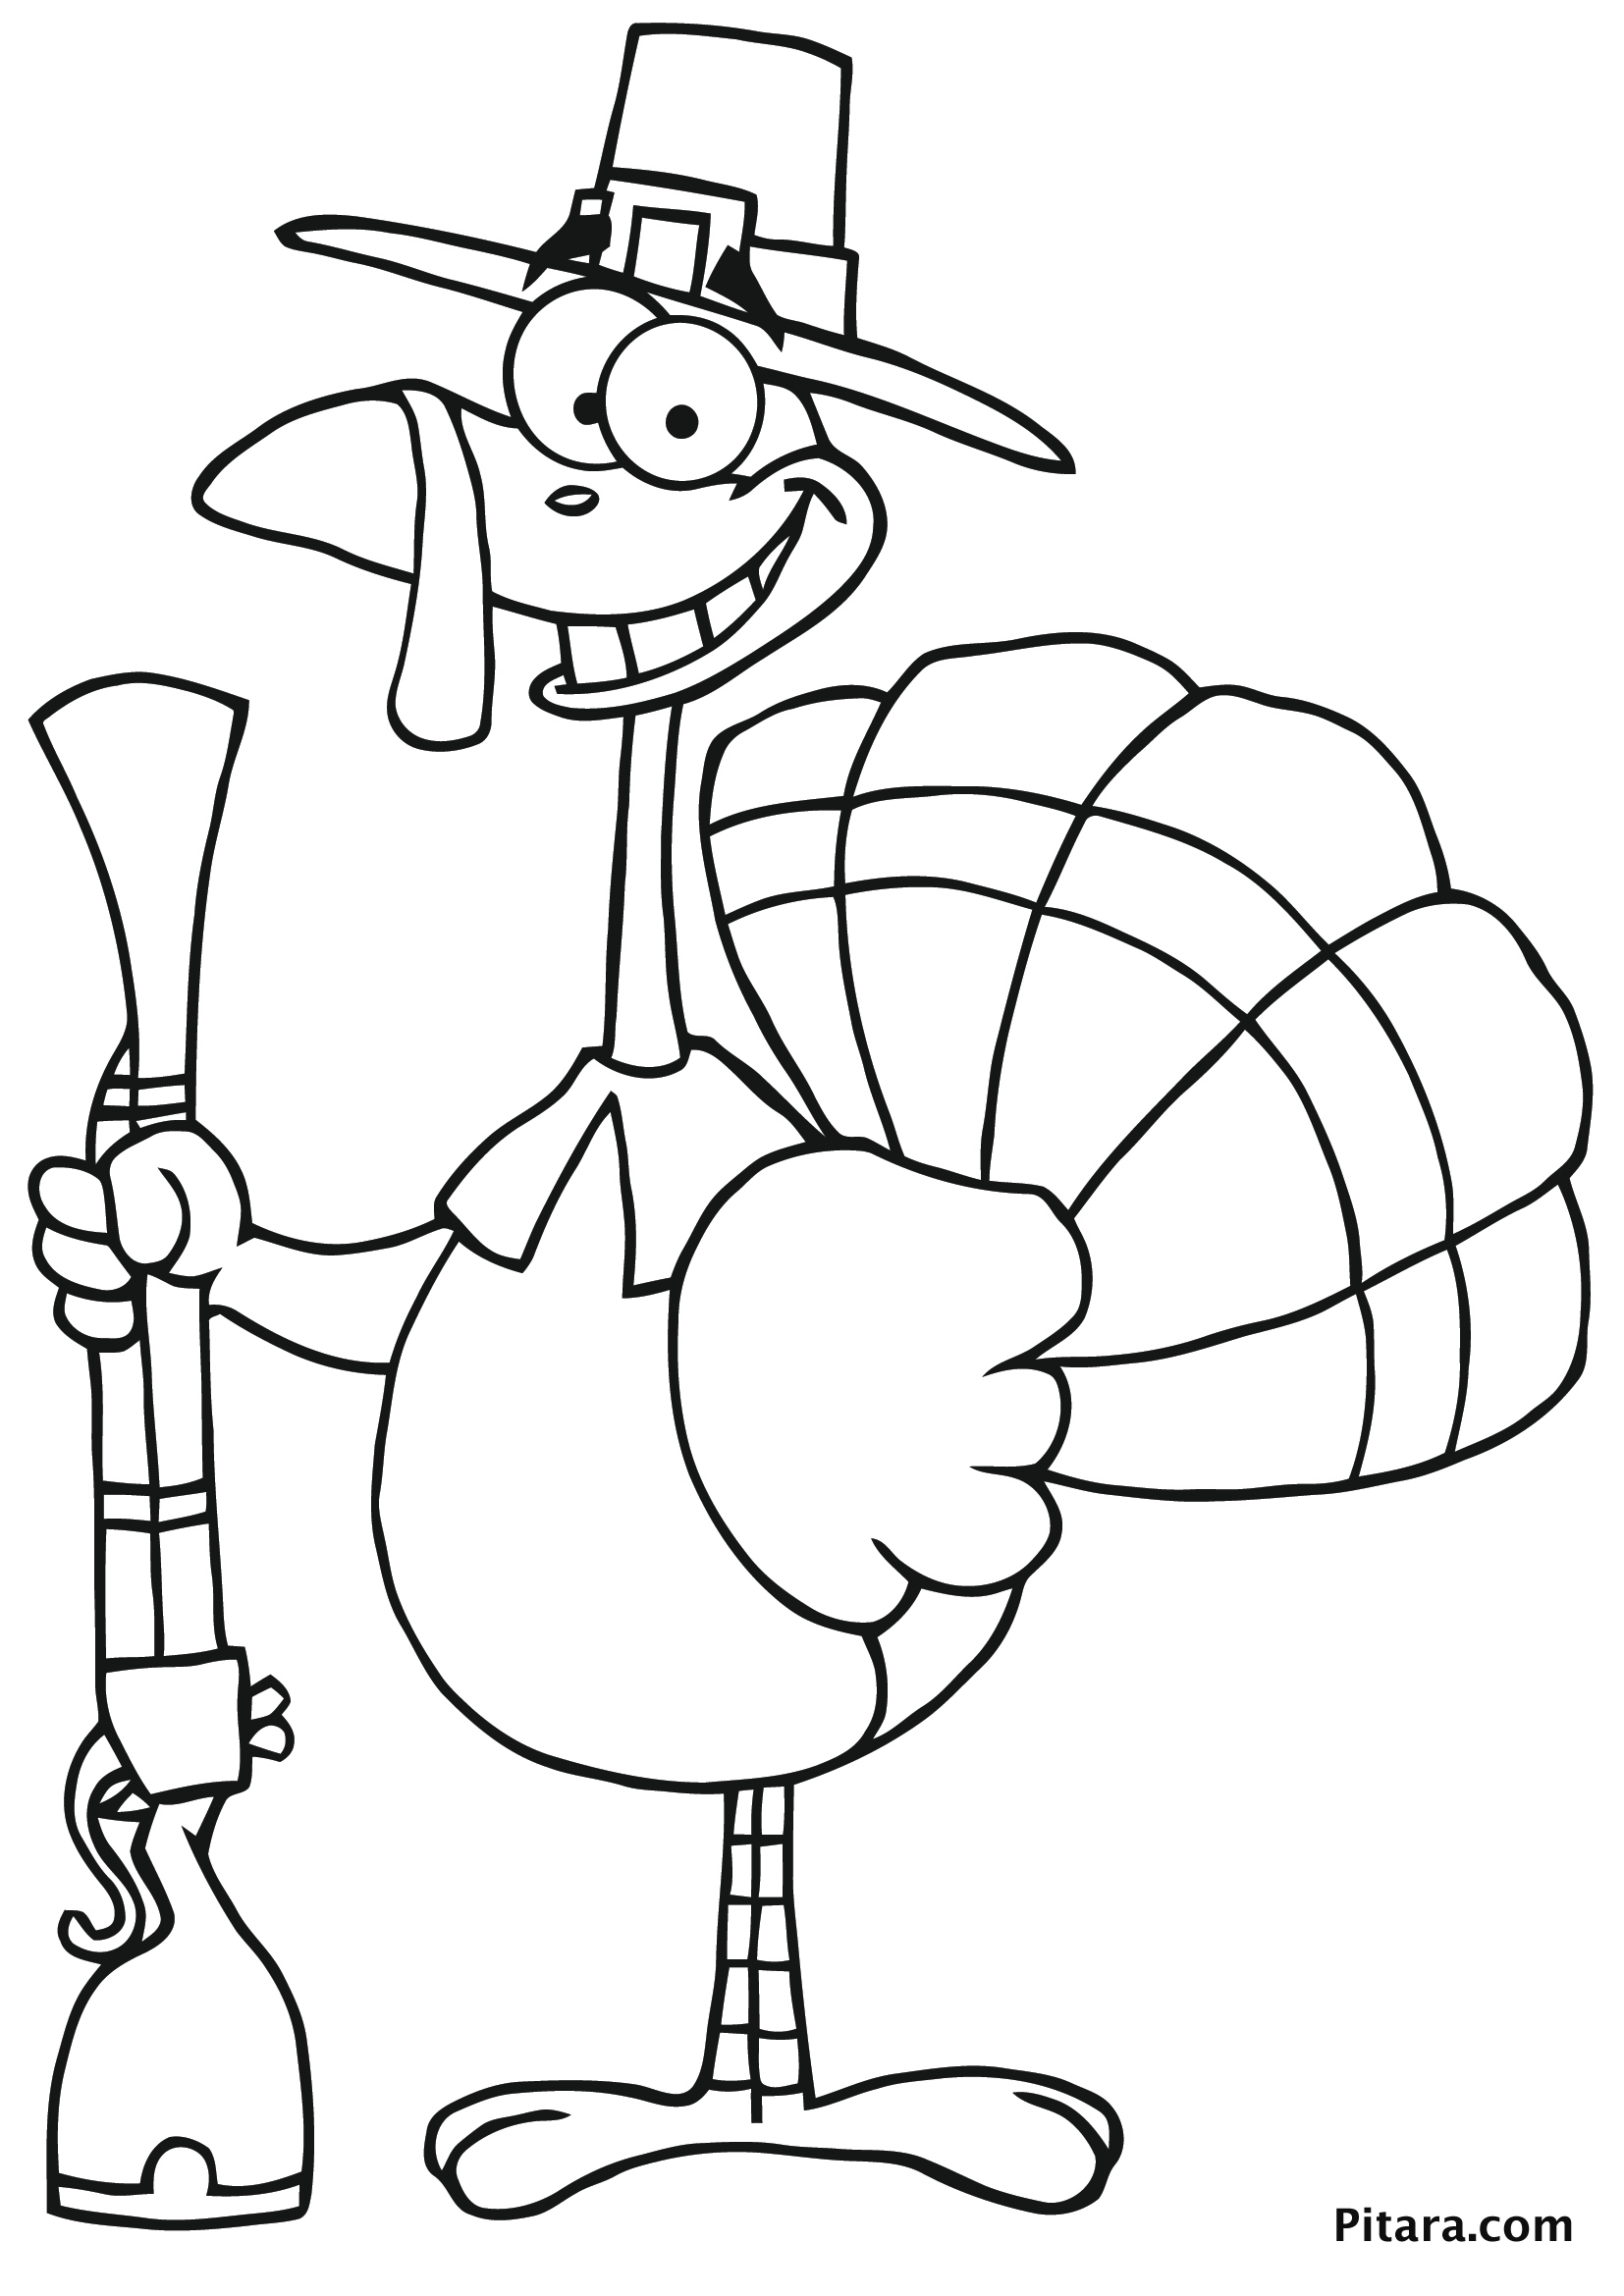 hunter turkey colouring page for kids pitara kids network